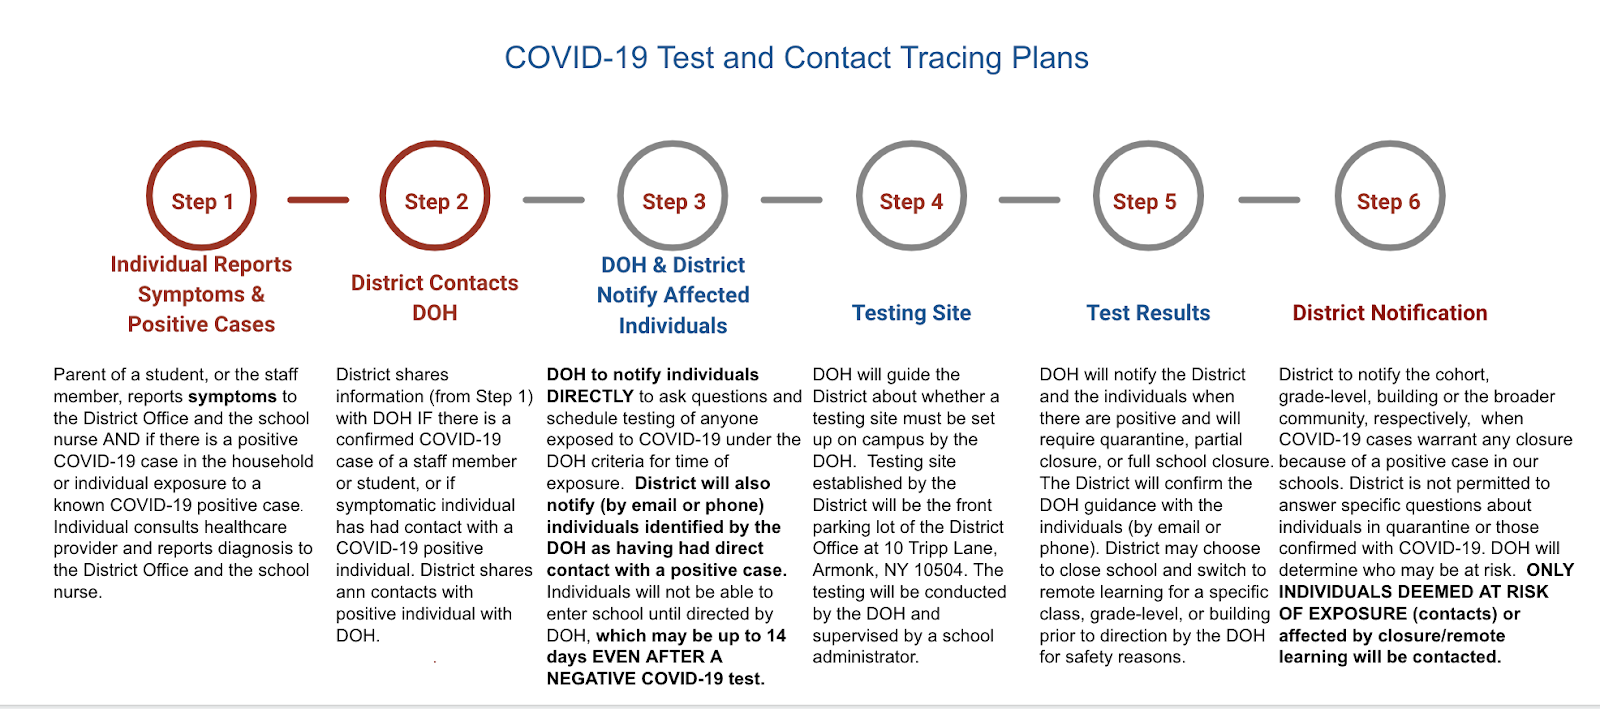 COVID-19 Test and Contact Tracing Steps